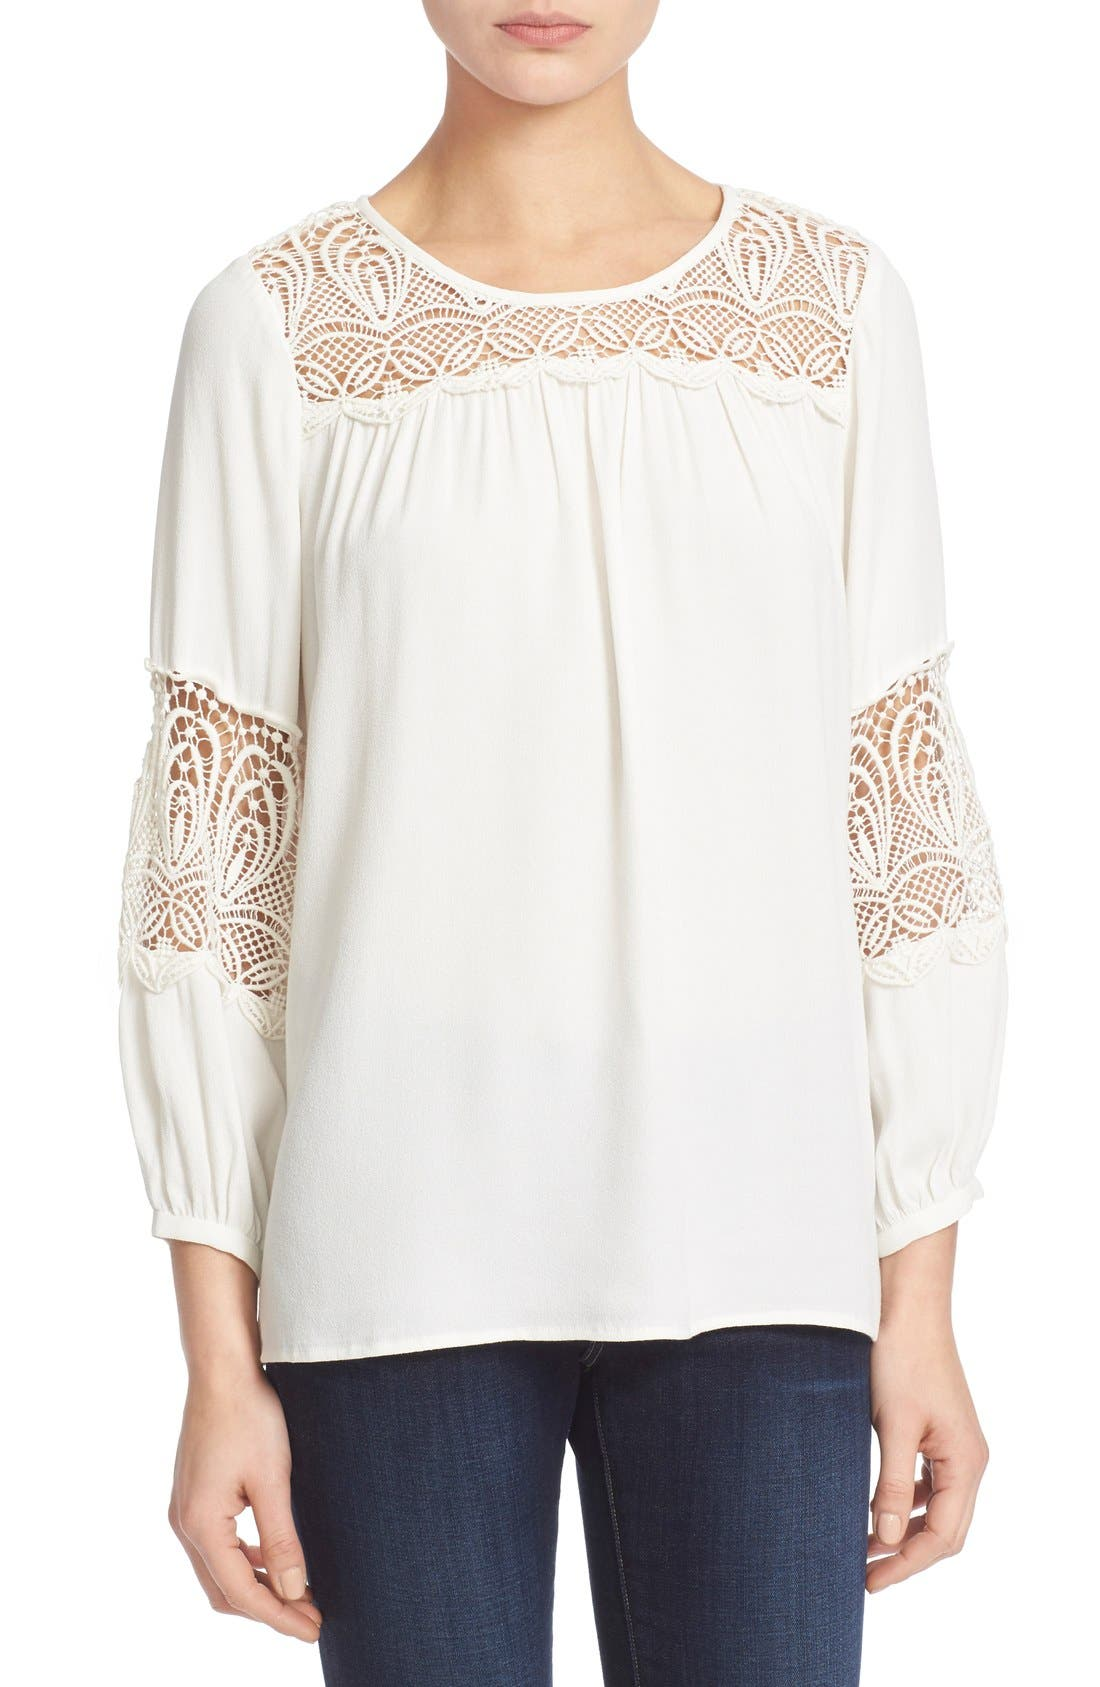 Alternate Image 1 Selected - Joie 'Coastal' Lace Inset Blouse